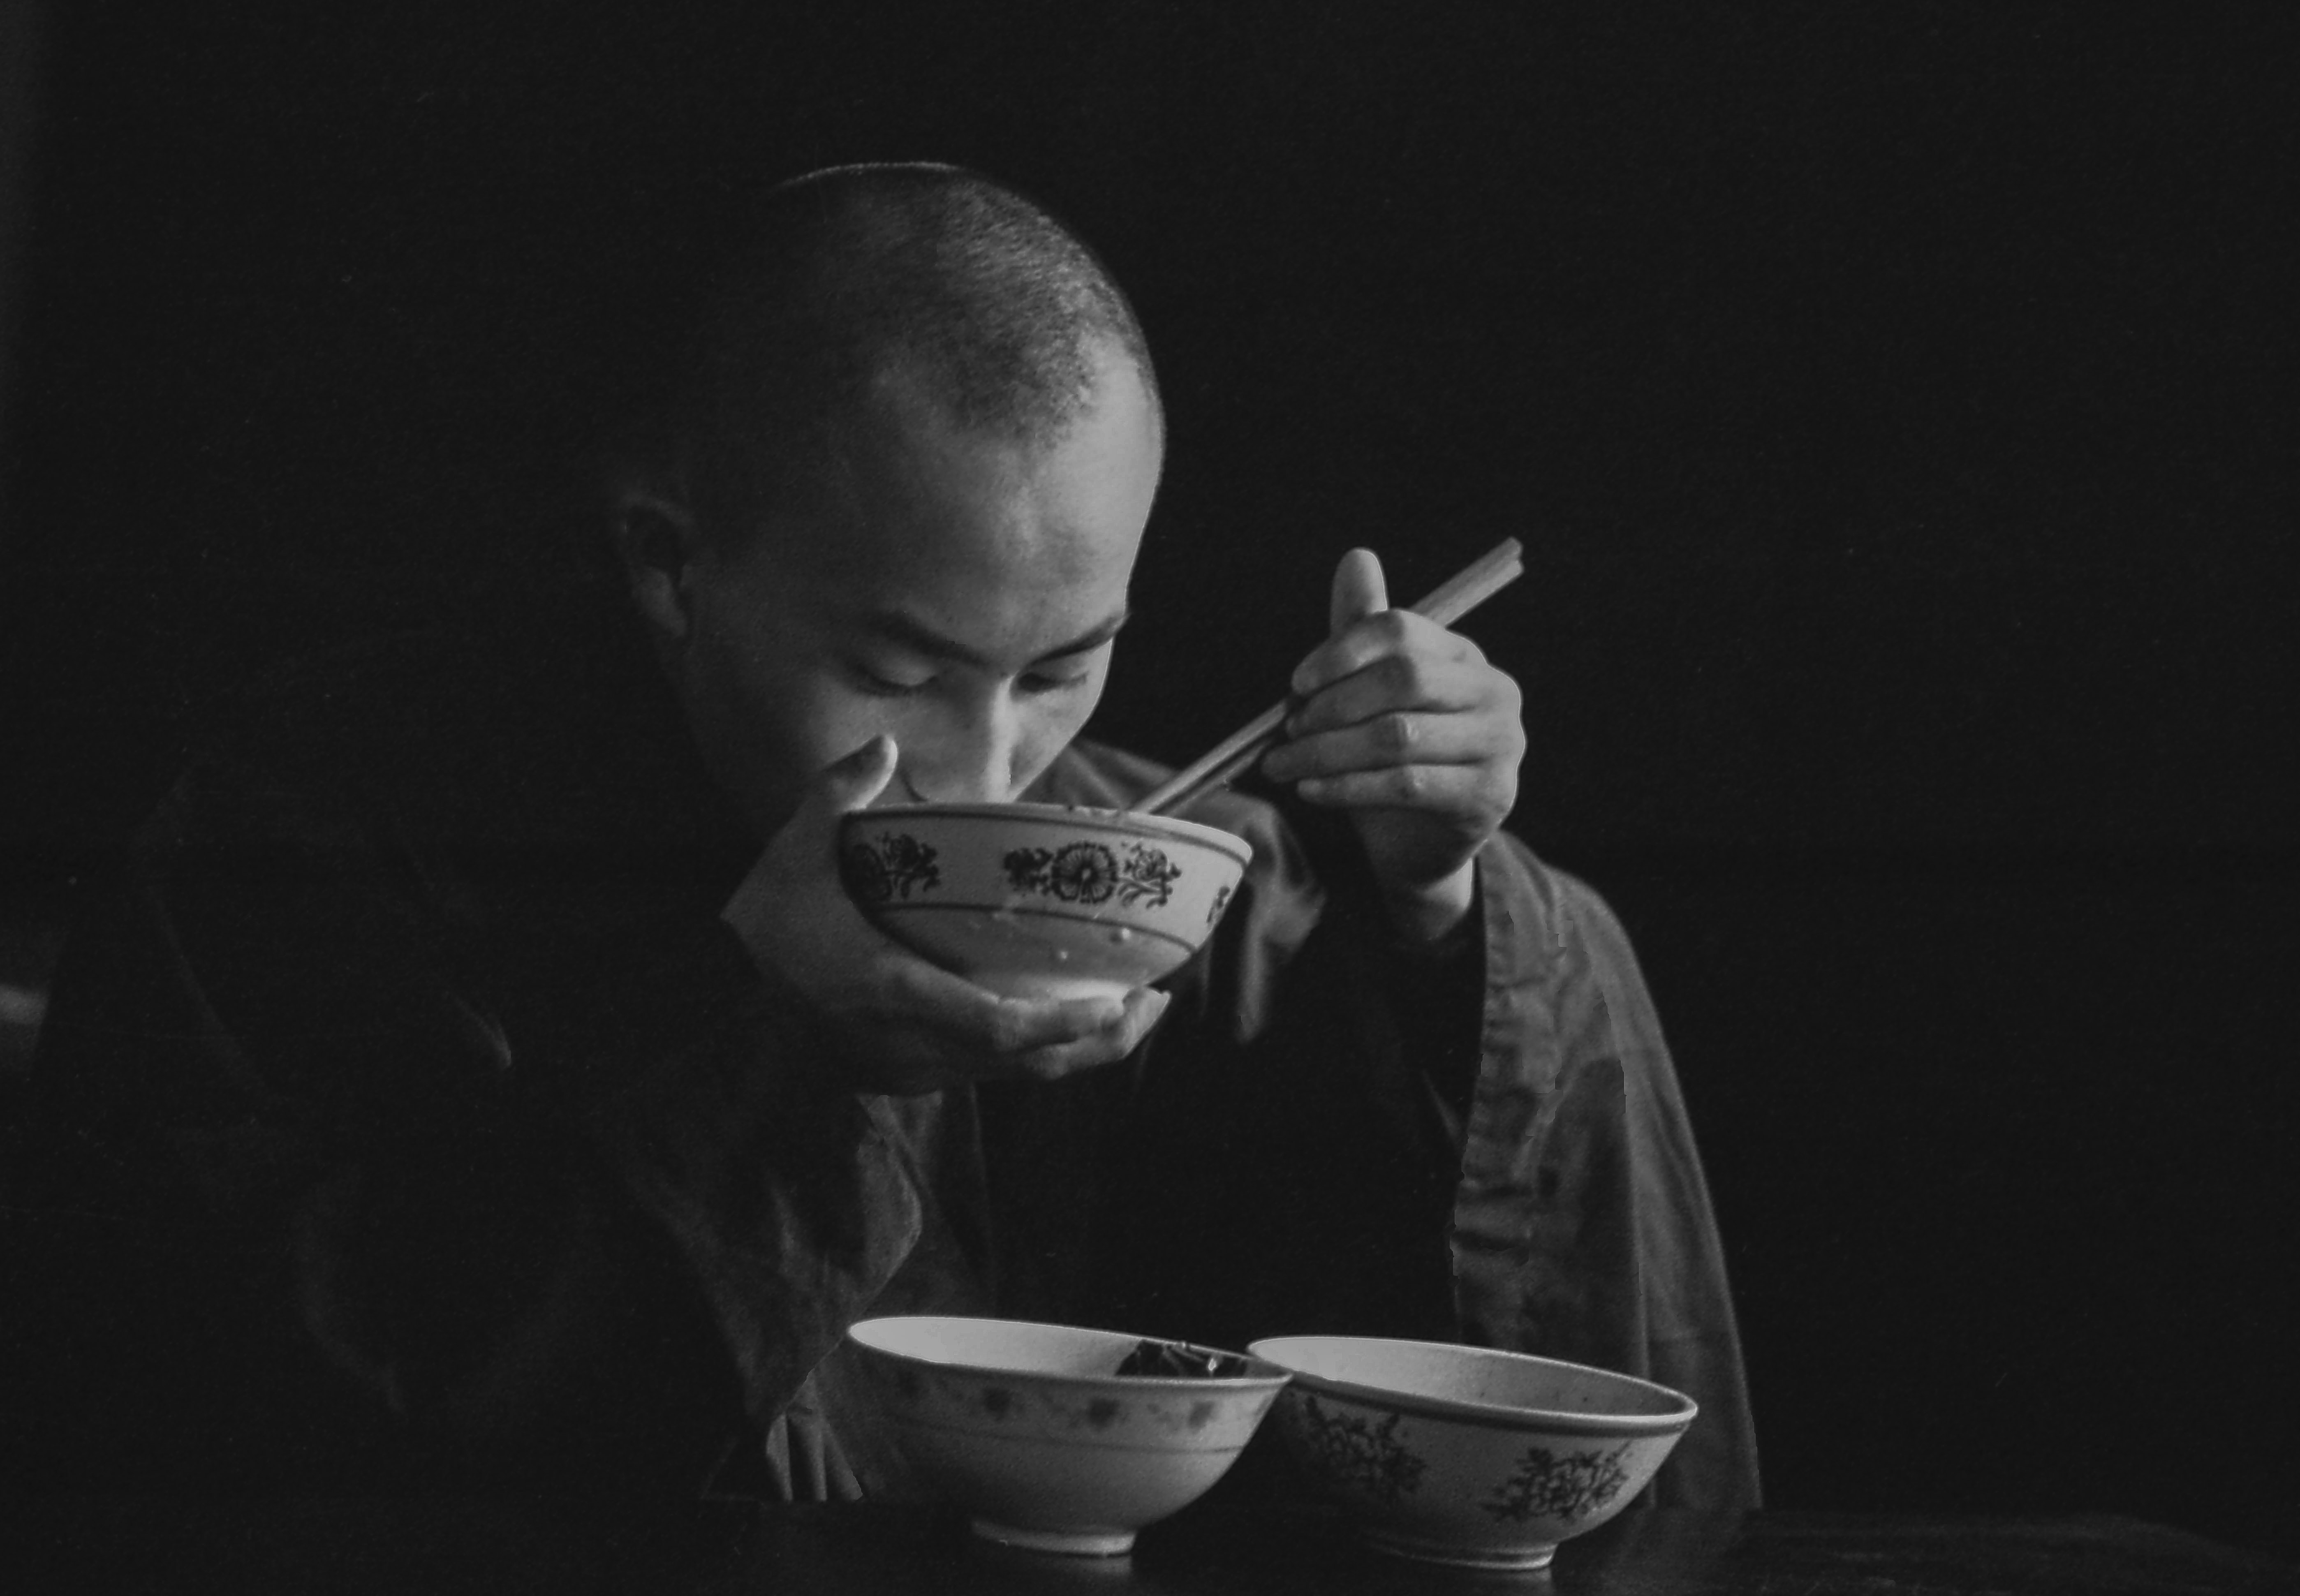 grayscale photography of eating macn